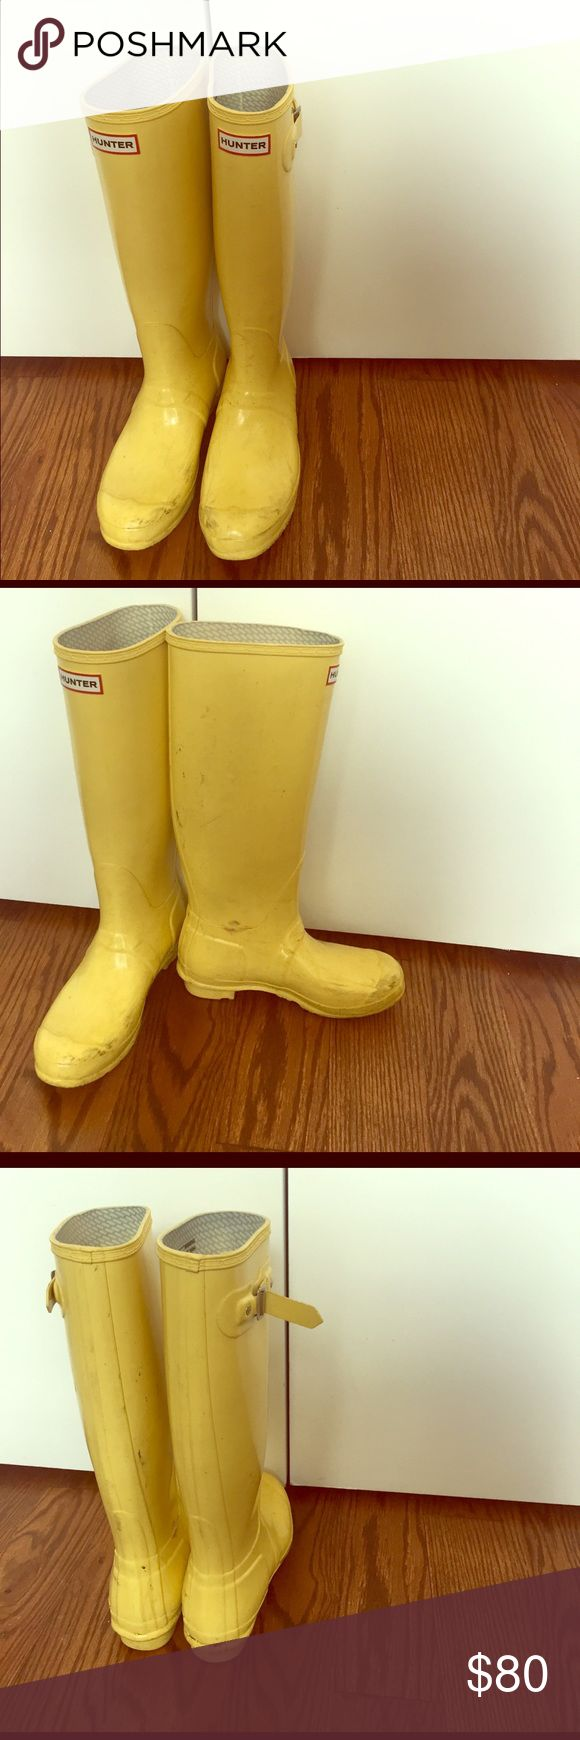 Woman's Hunter Boots Knee-high yellow rain boots. These need a little scrub love. I scrubbed a little. The last two pics are a before the scrub and after. Hunter Boots Shoes Winter & Rain Boots